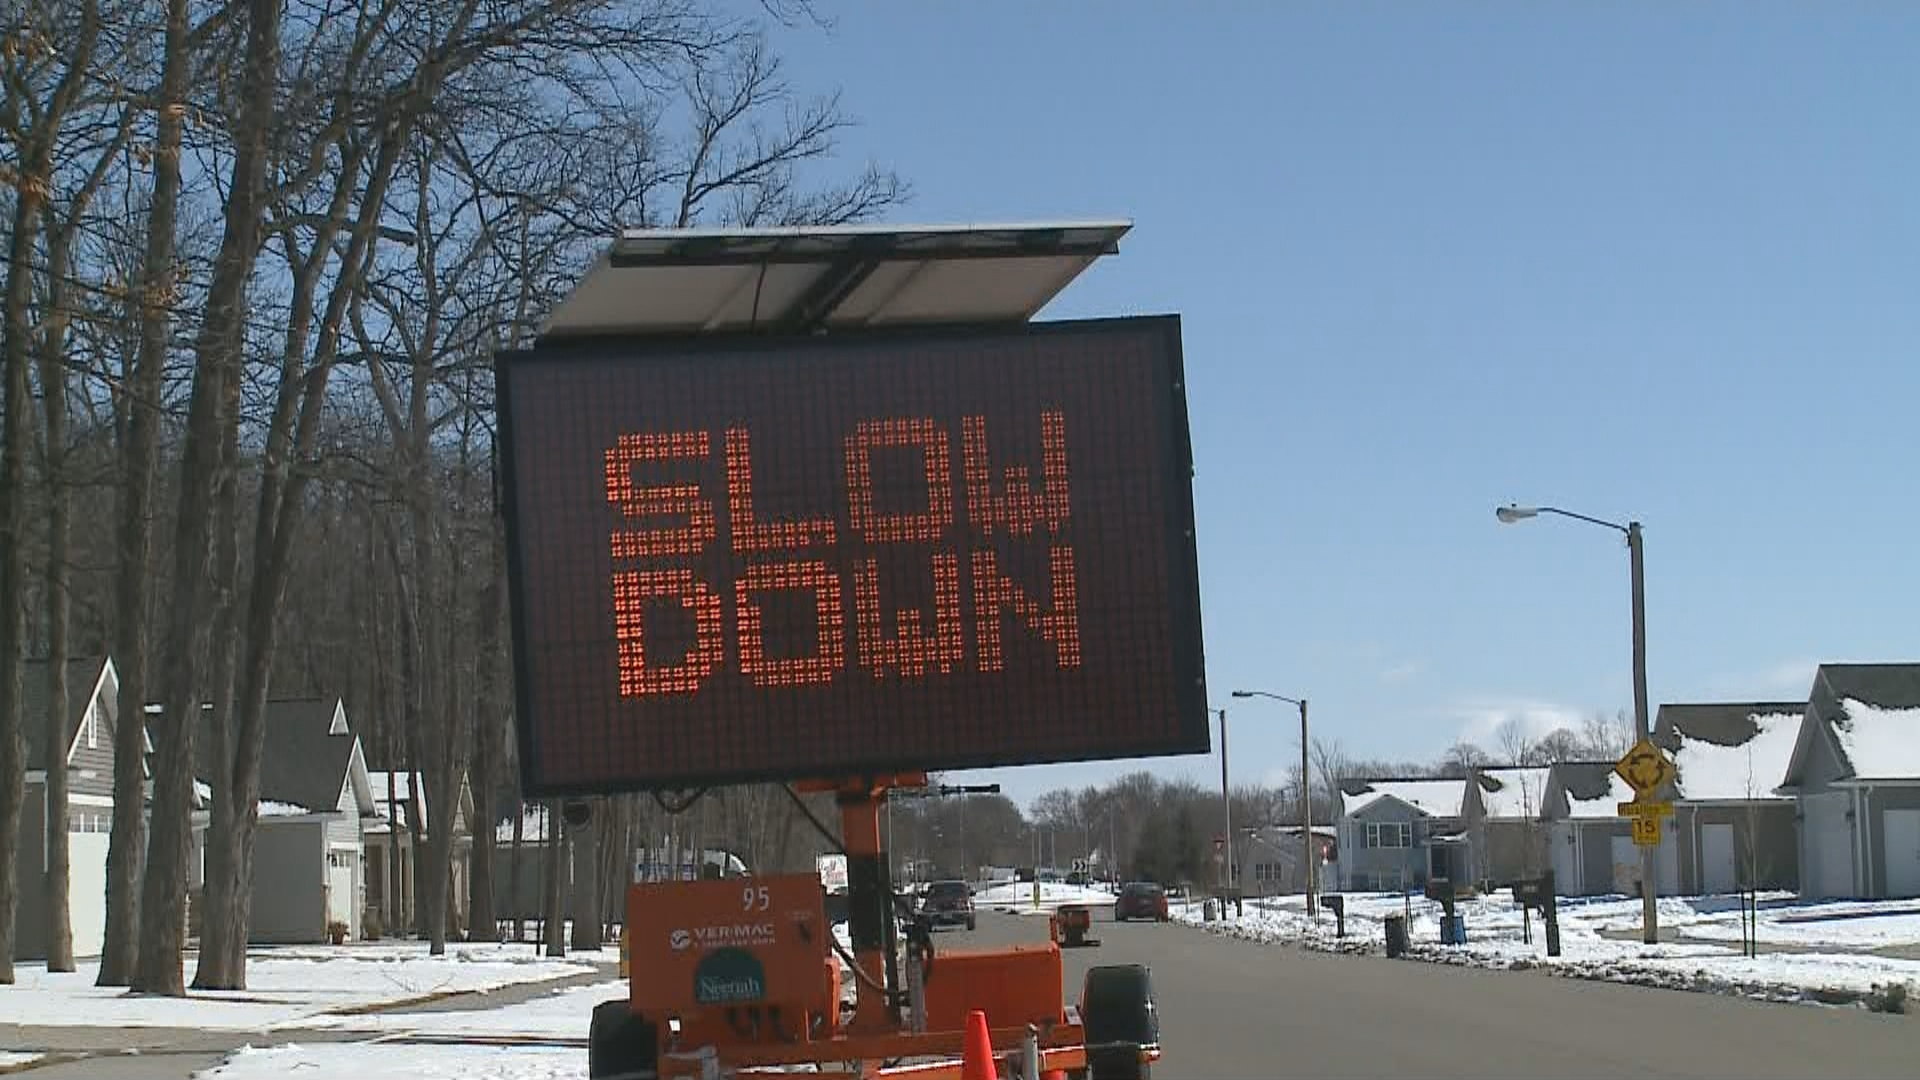 Neenah road sign in the area of Castle Oak Drive and Marathon Avenue, March 8, 2018. (WLUK)<p></p>